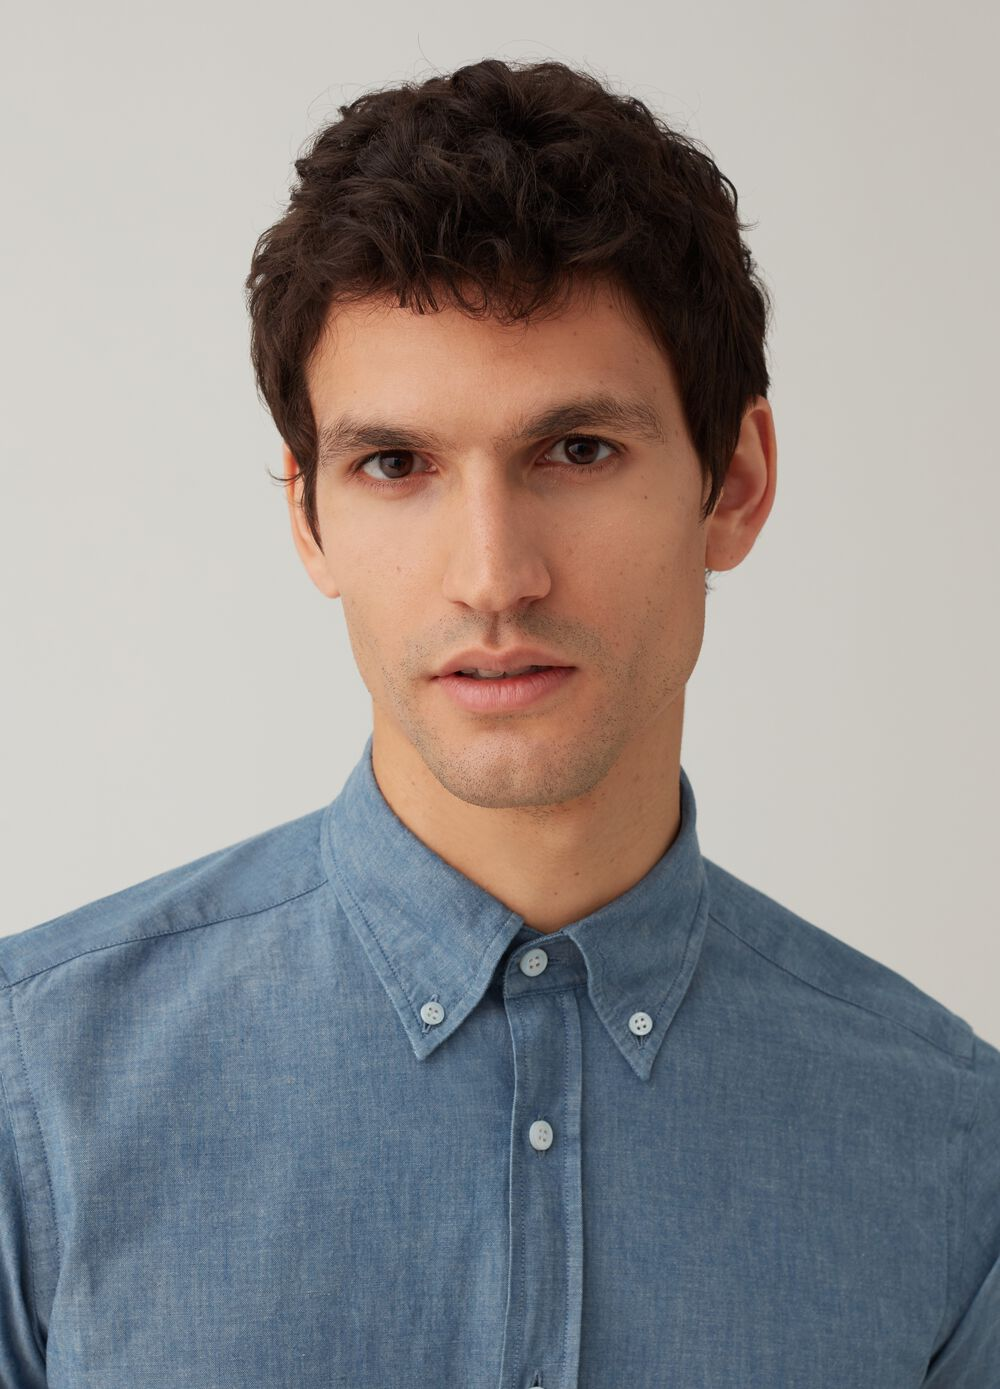 Rumford cotton shirt with button-down collar